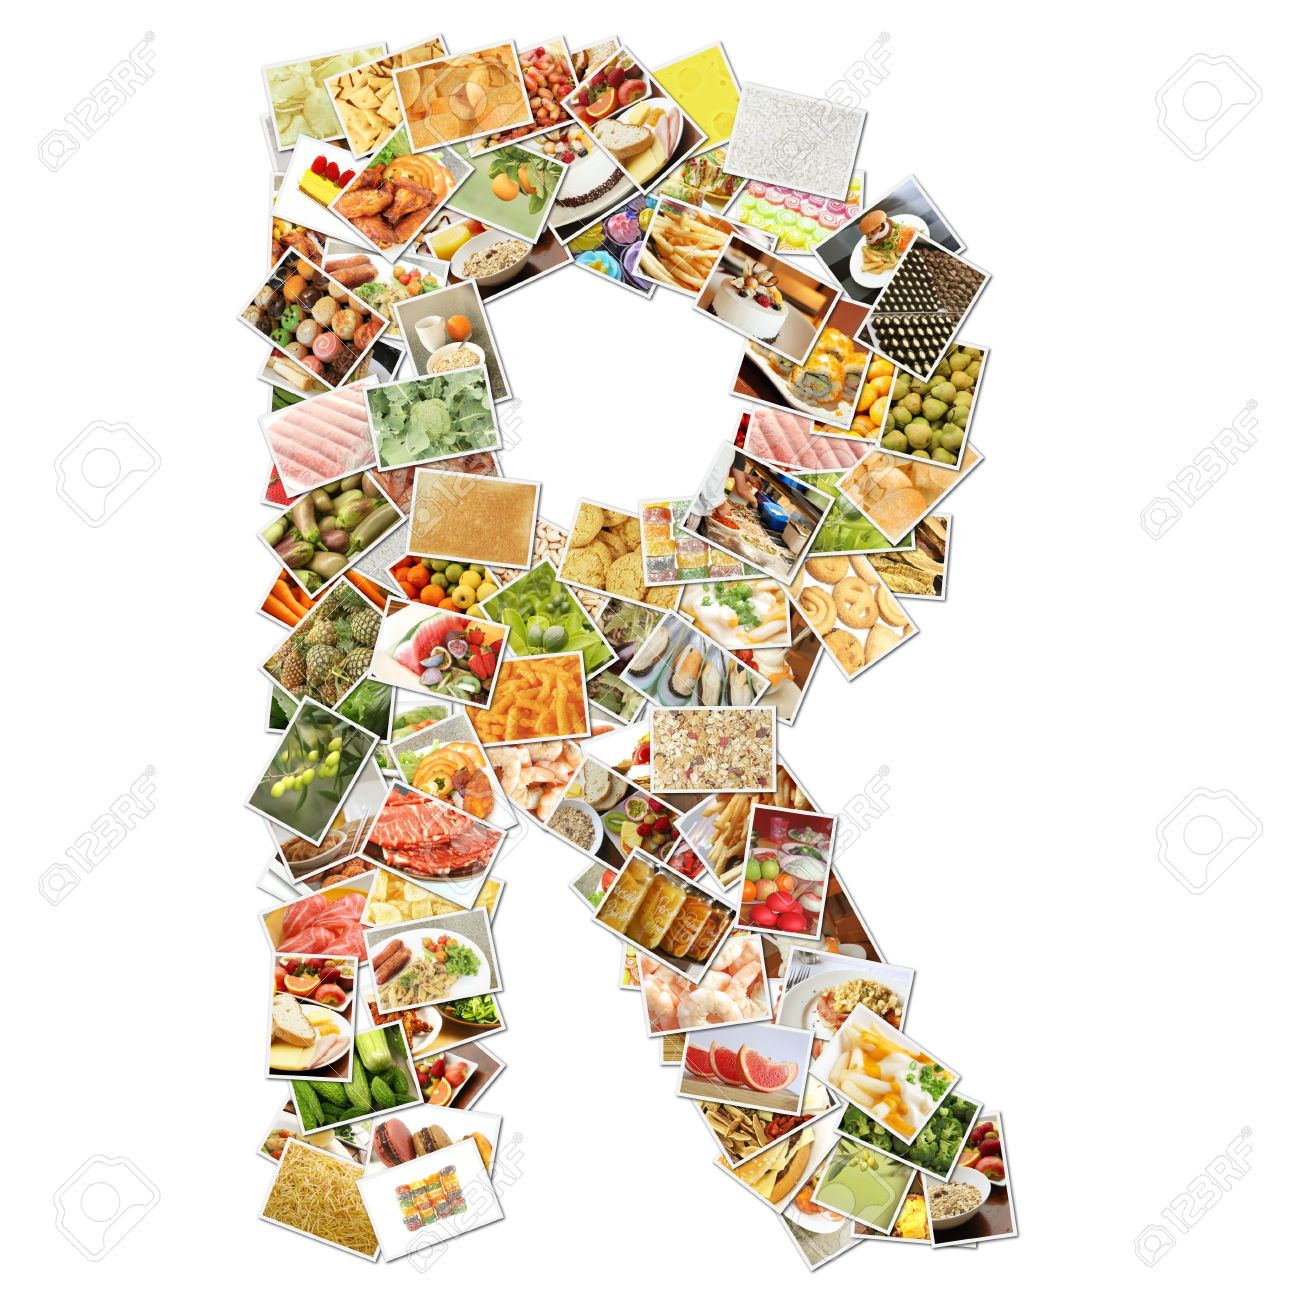 letter r with food collage concept art stock photo picture and